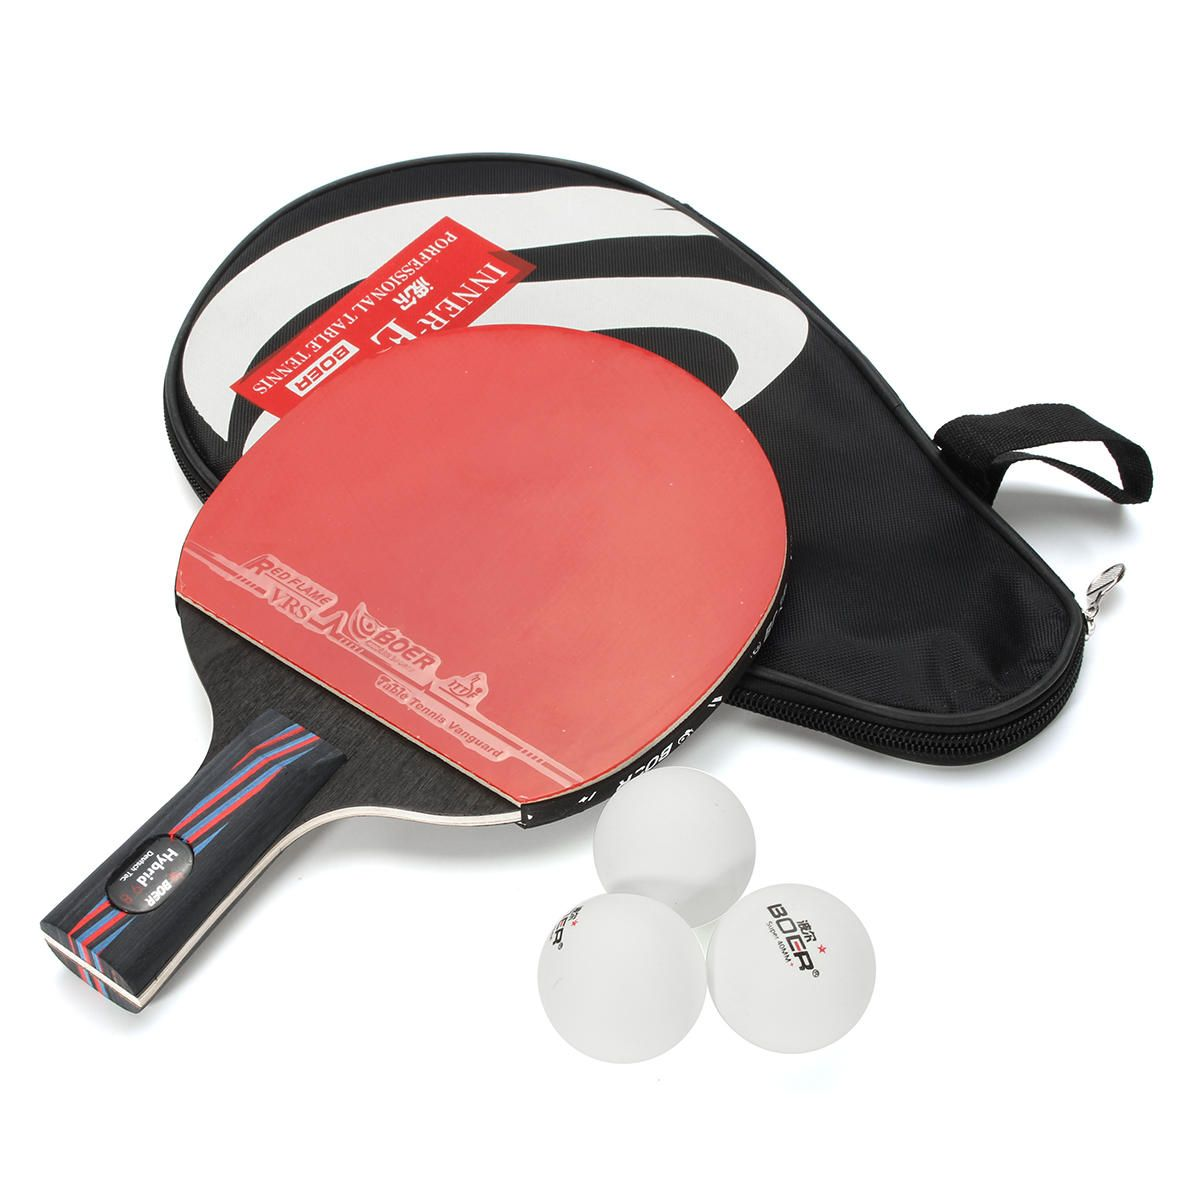 Us 19 36 Table Tennis Racket Ping Pong Paddle Short Handle Shake Hand Indoor Table Tennis Team Sport From Sports Outdoor On Banggood Com